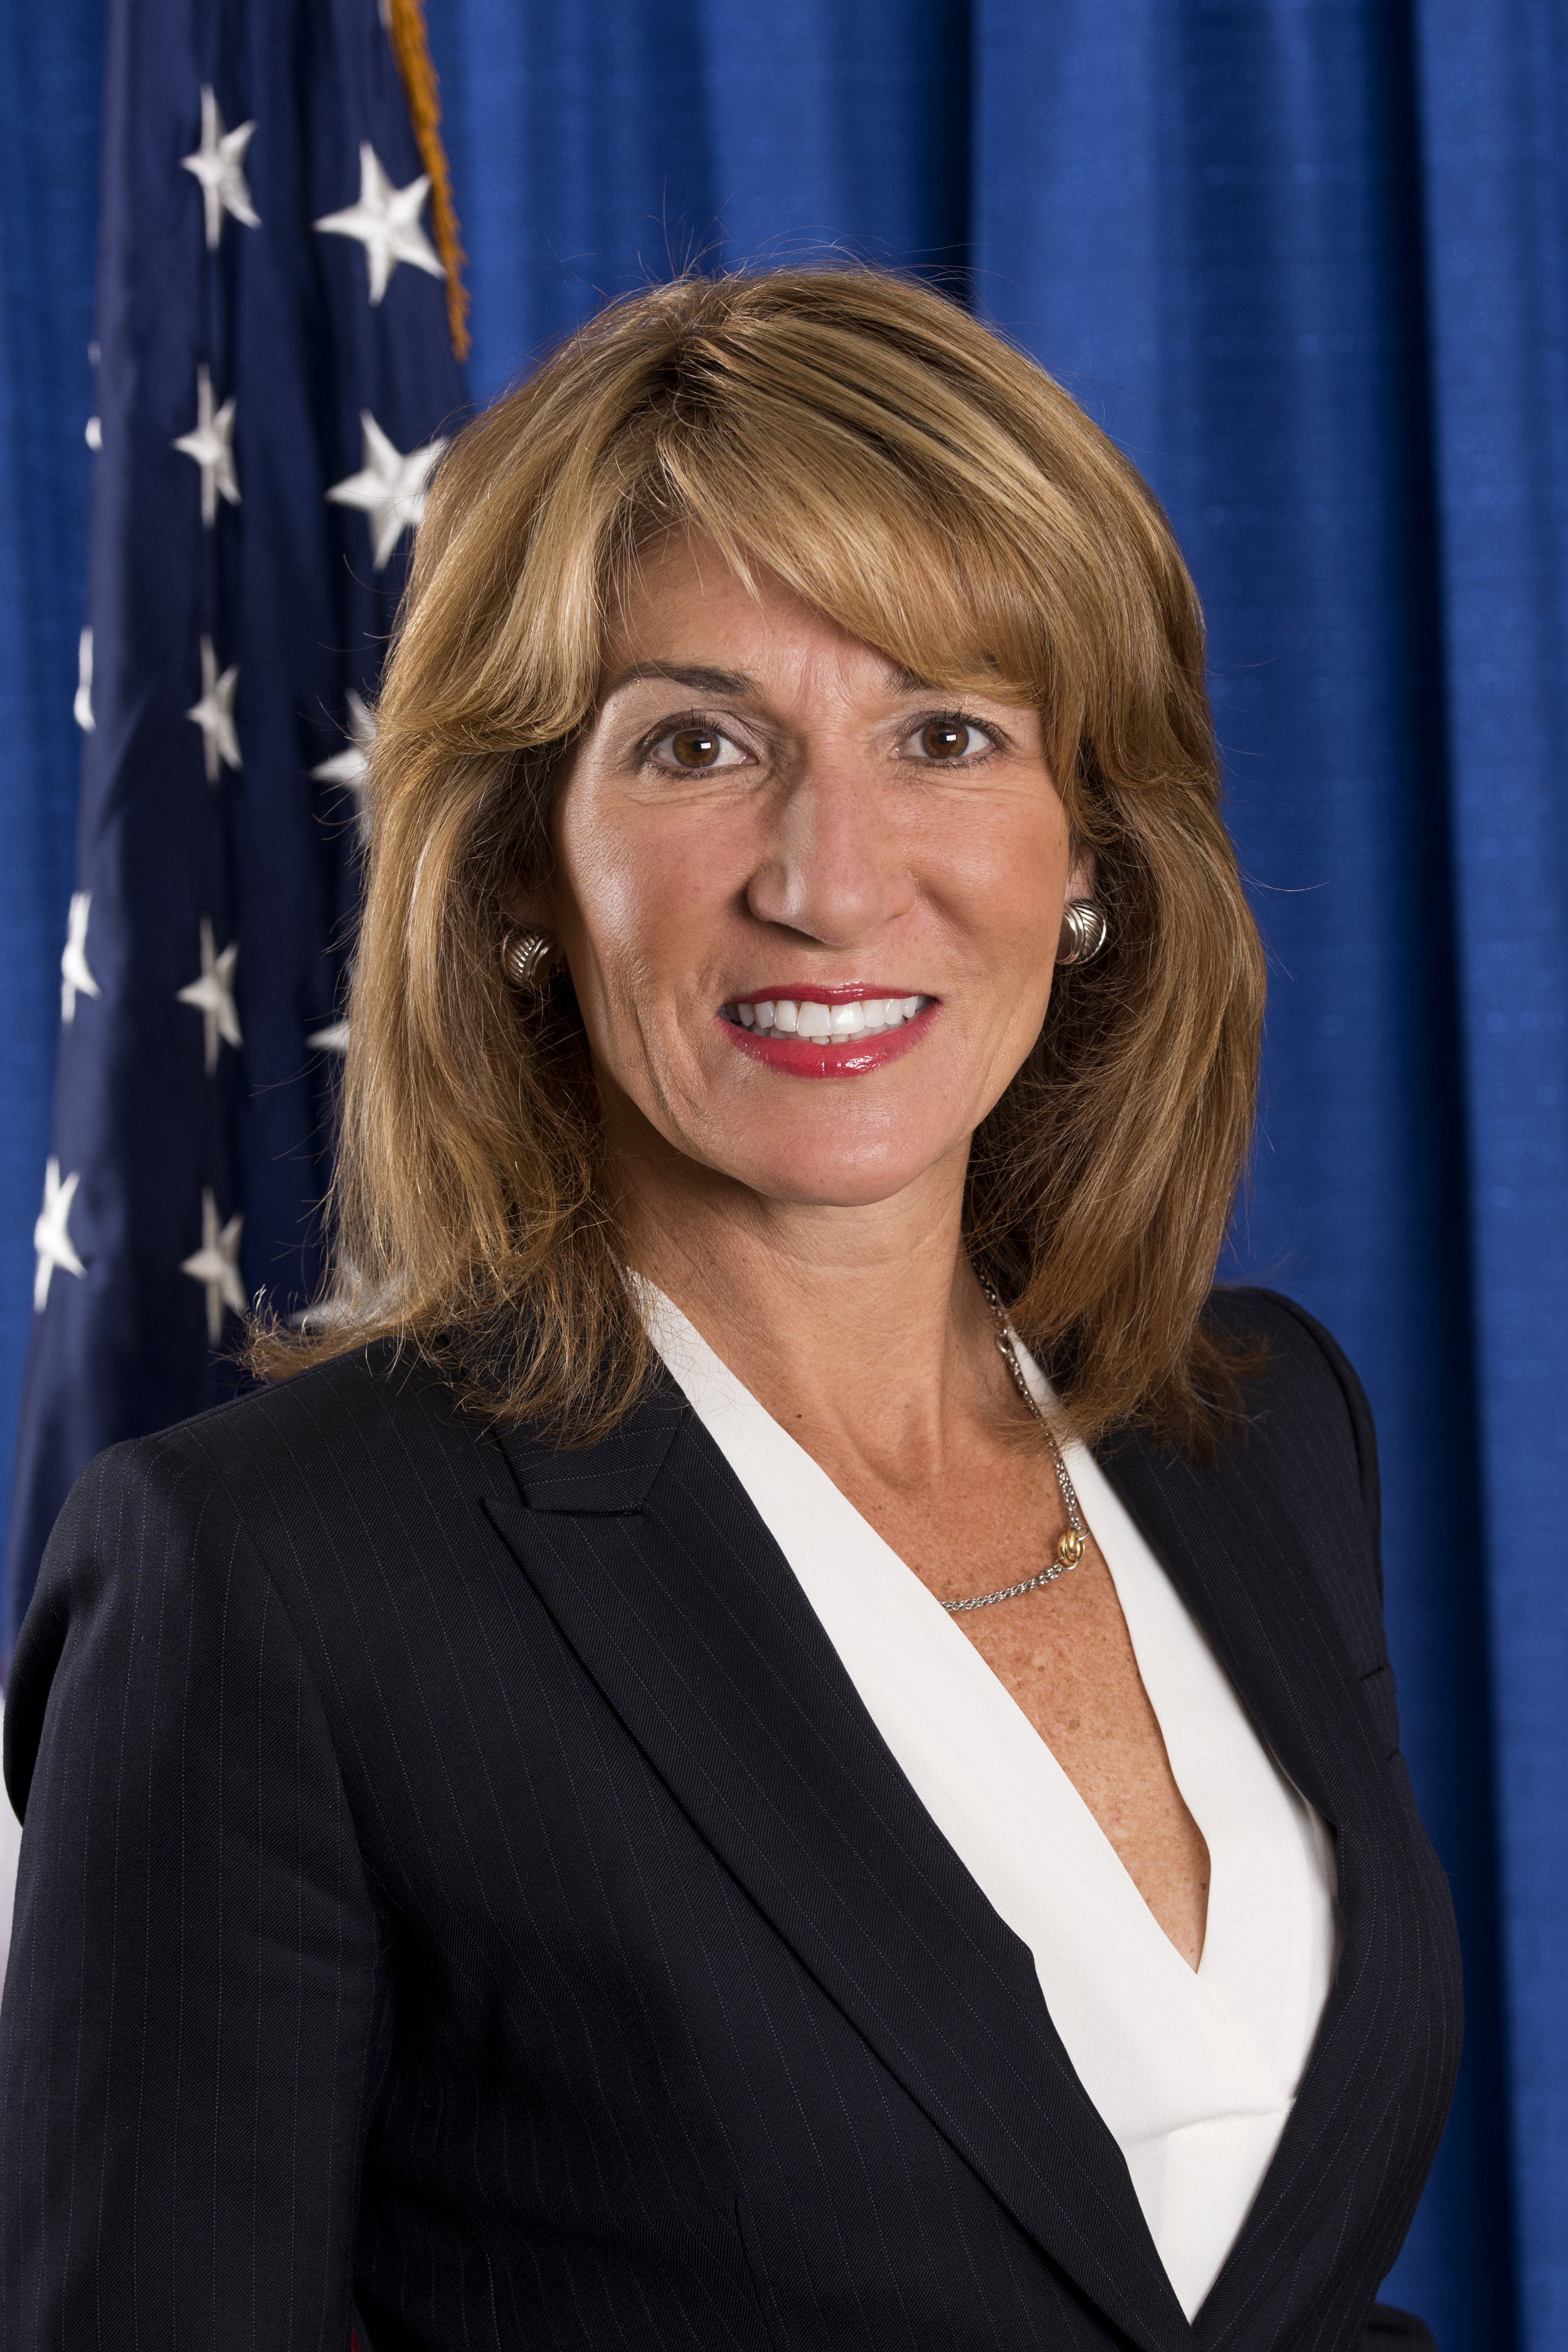 Karyn Polito, MA Lt. Governor - Boston OfficeMassachusetts State House, Room 280, Boston, MA 02133Phone: (617) 725-4005Contact By Email